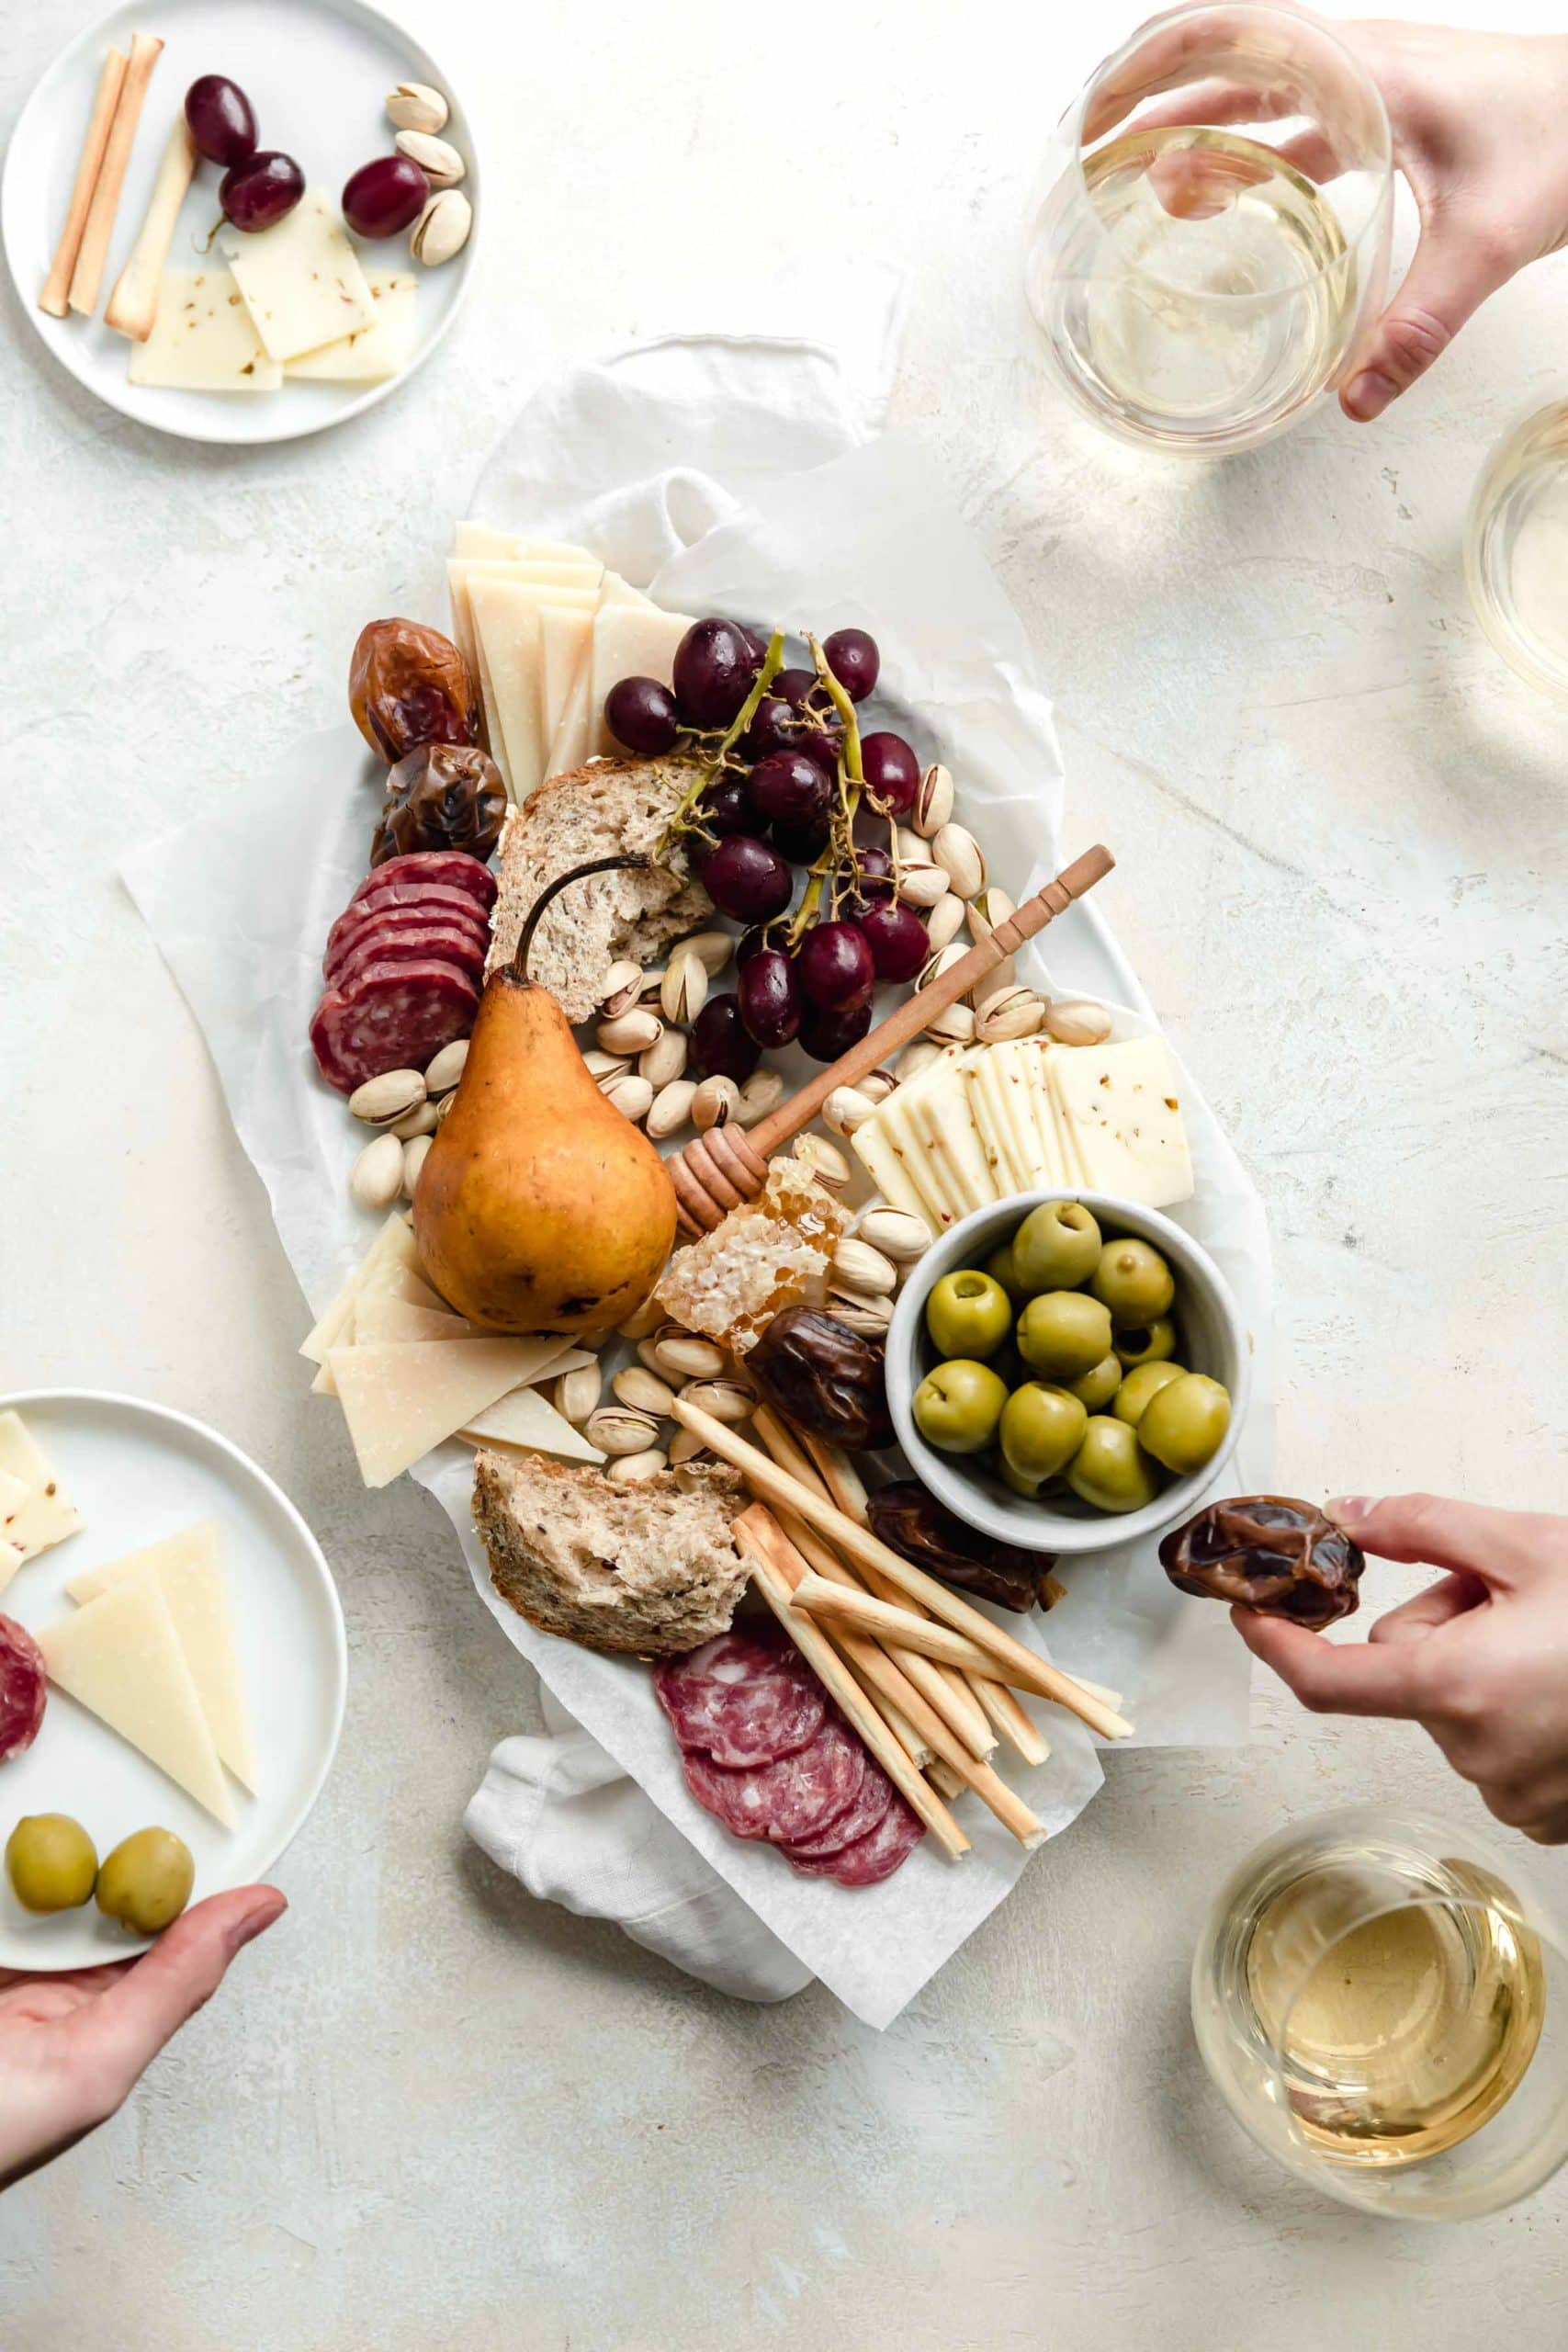 https://bromabakery.com/how-to-make-a-cheeseboard/